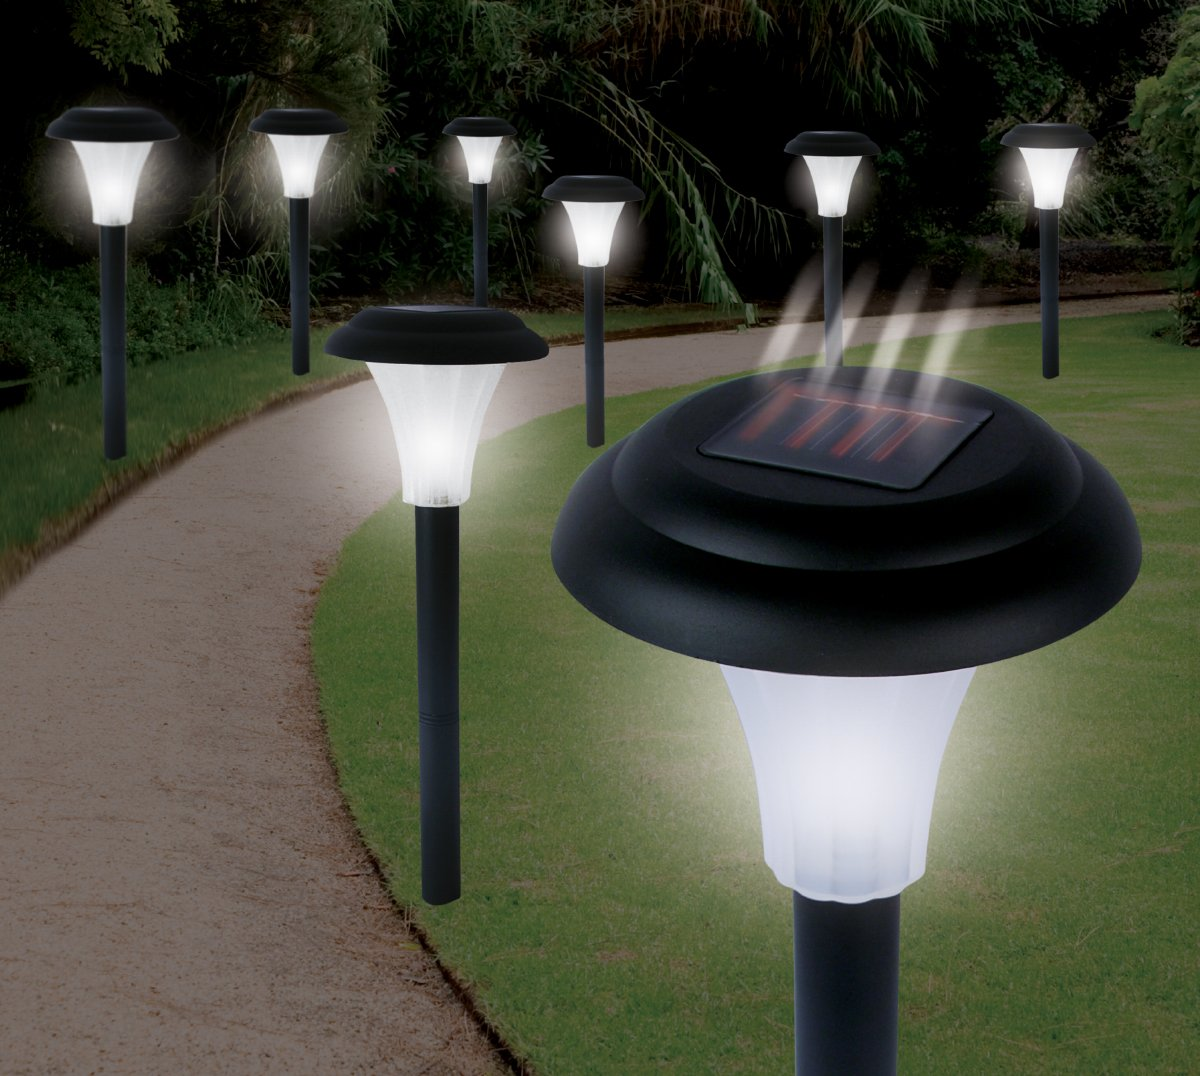 Ideaworks JB5629 Solar-Powered LED Accent Light, Set of 8 - String ...